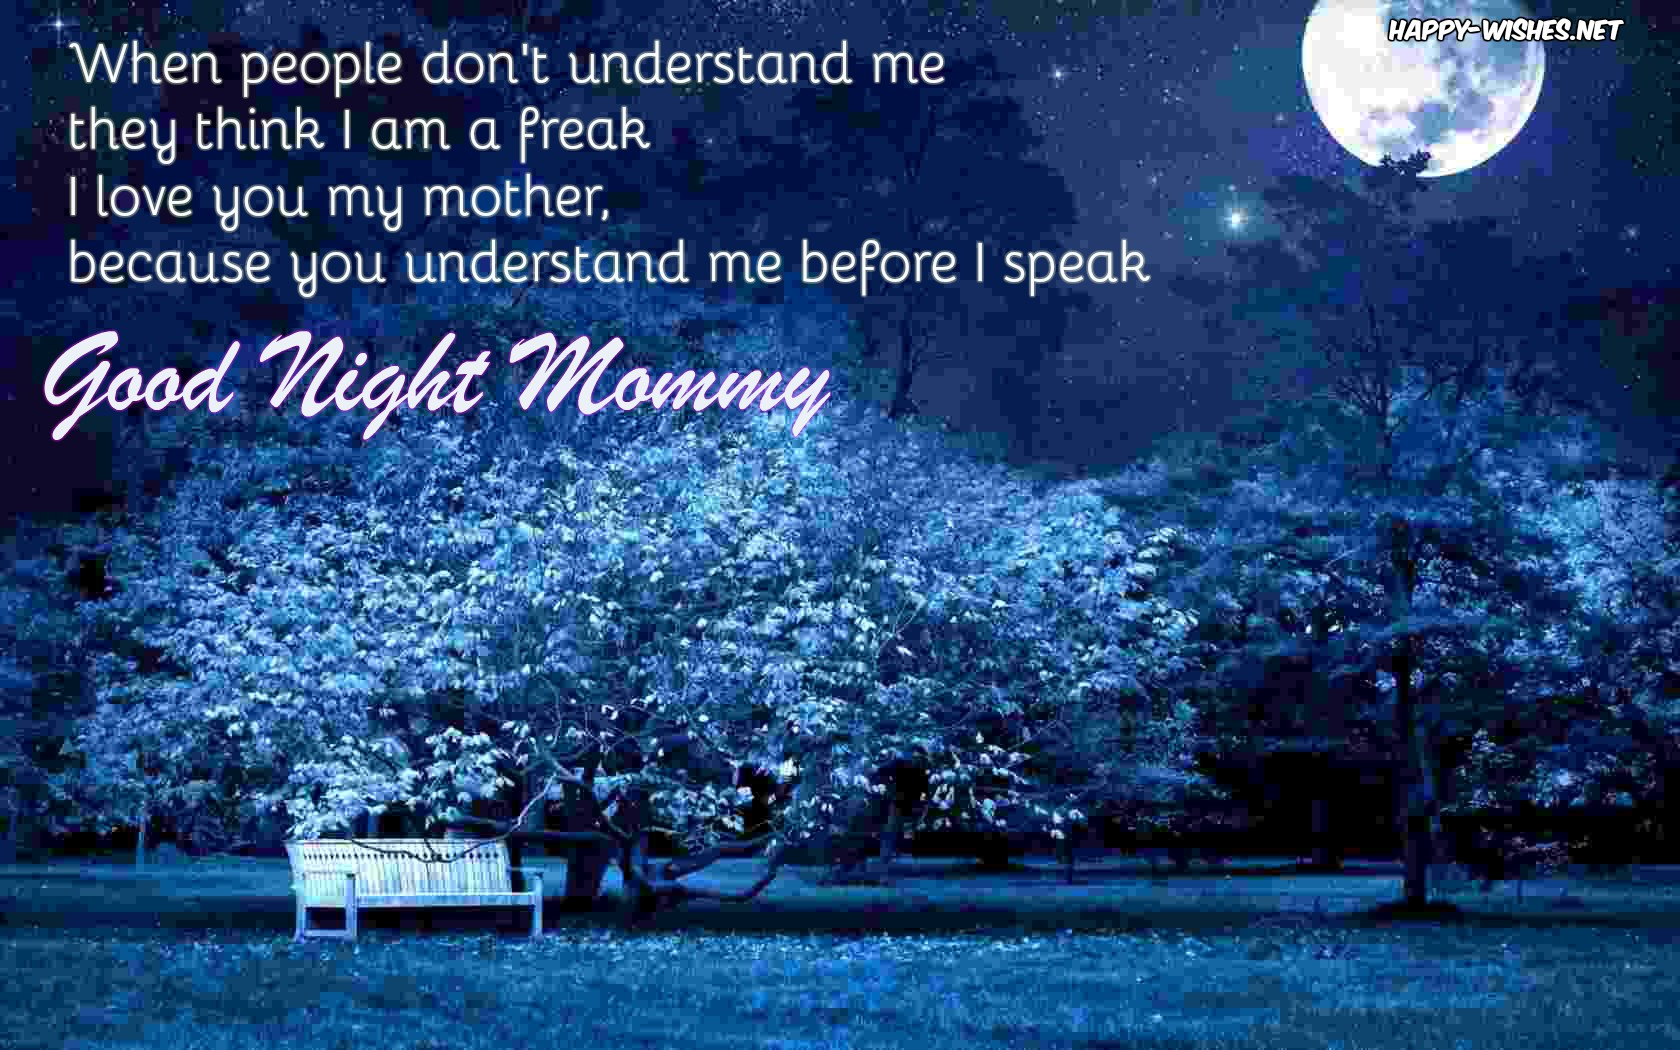 Good Night Mommy Wishes - Quotes & Messages